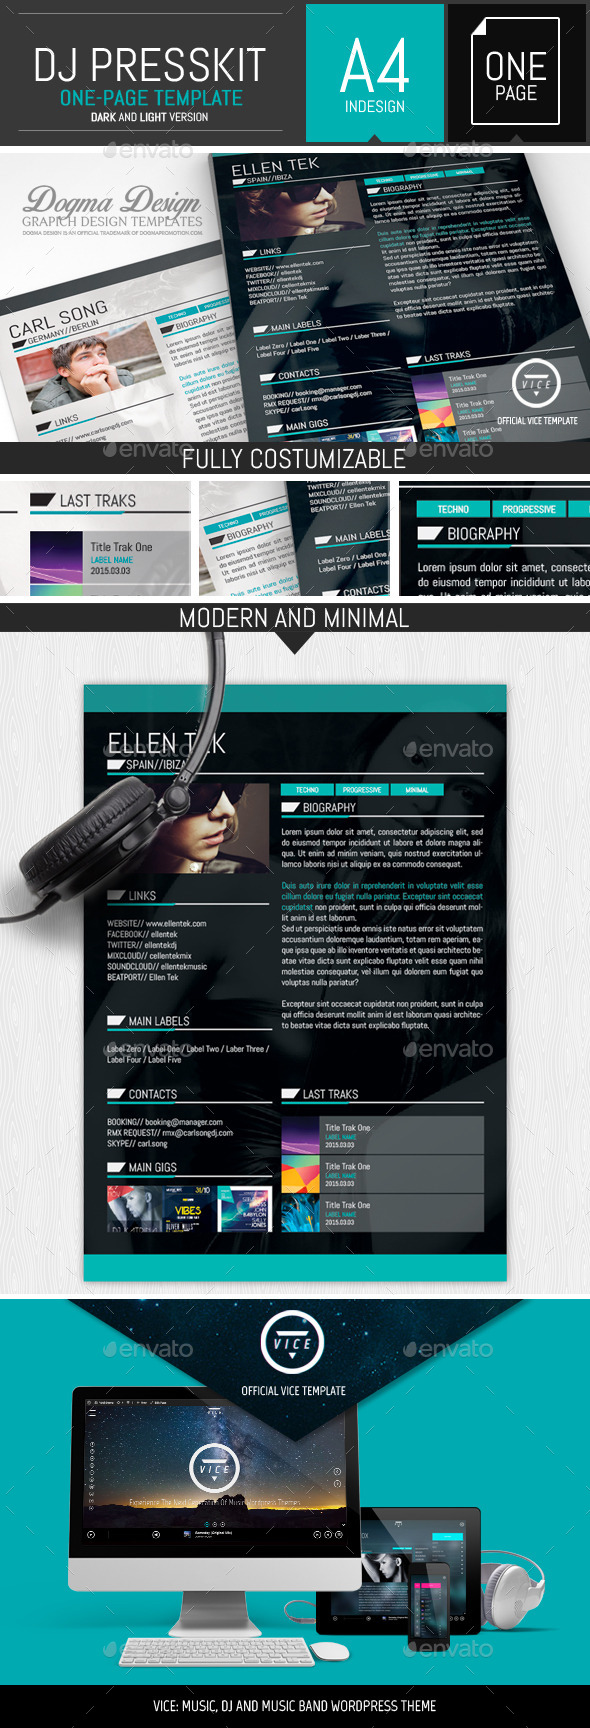 resume Resume On Indesign vice dj musician onepage resume indesign template by dogmadesign resumes stationery